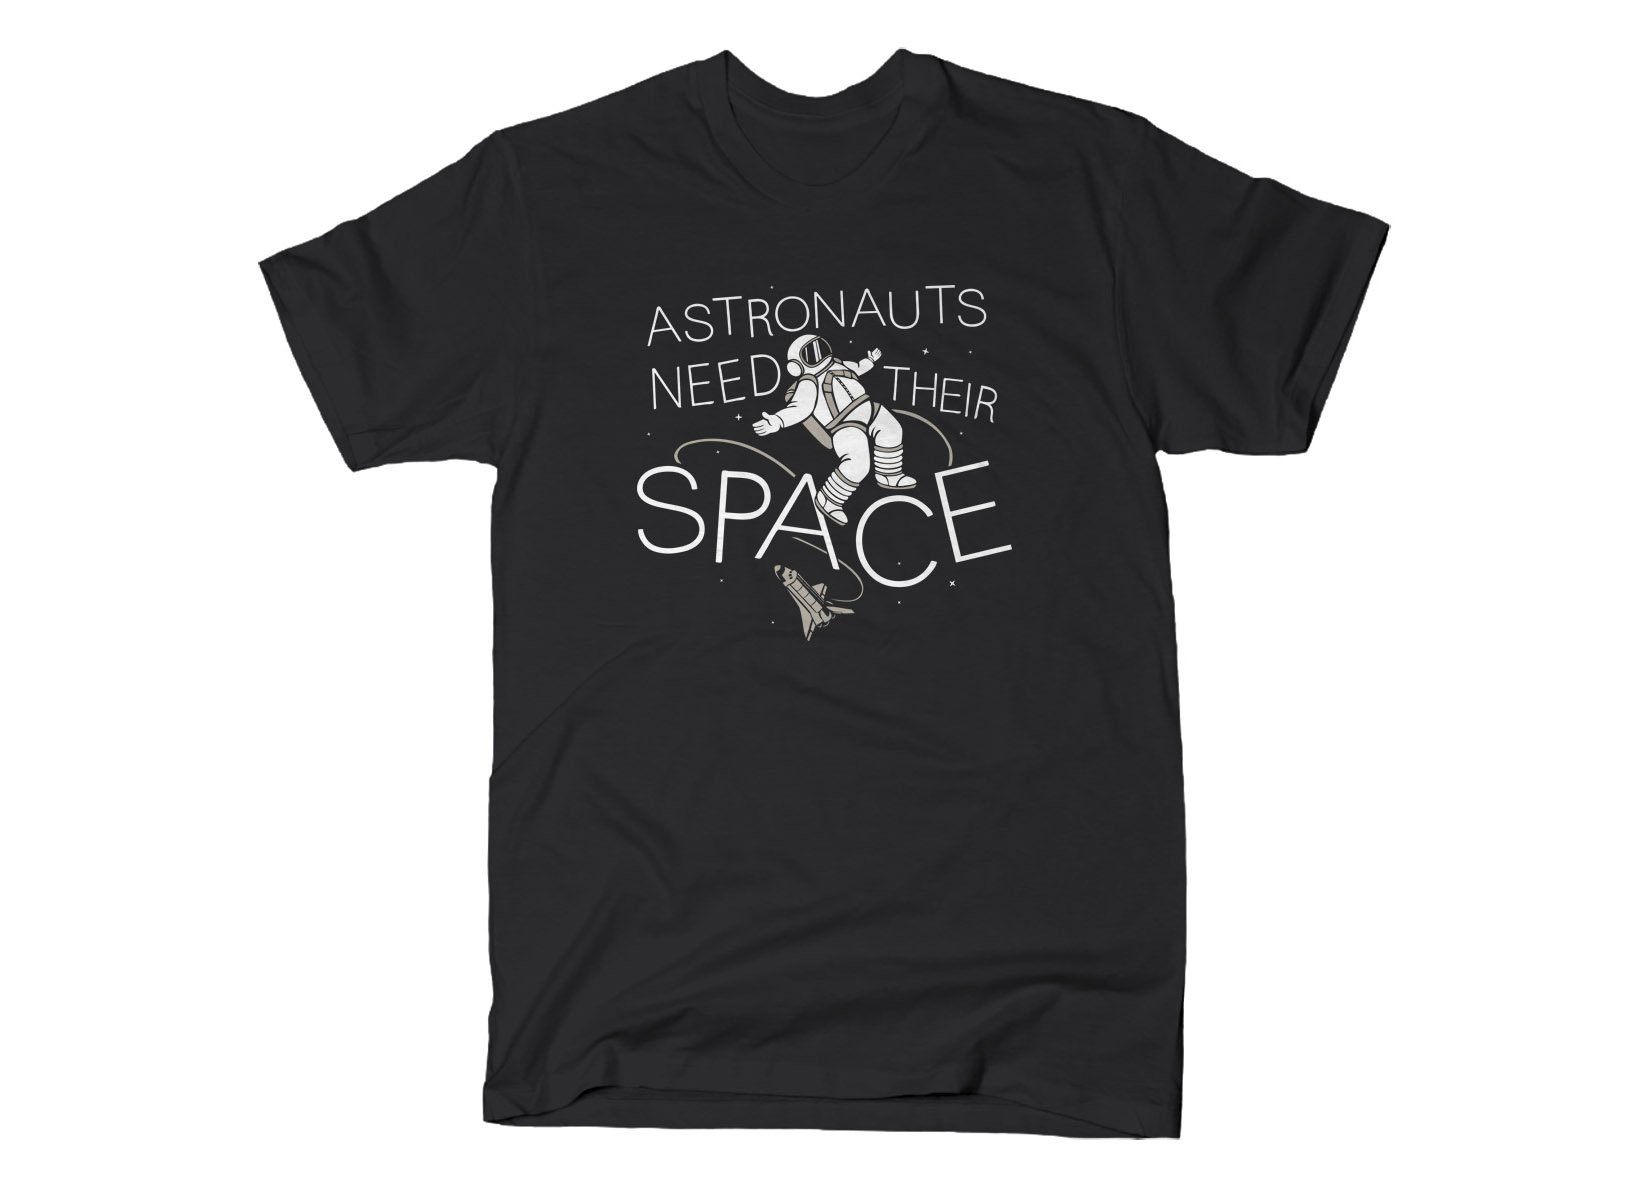 Astronauts Need Their Space on Mens T-Shirt